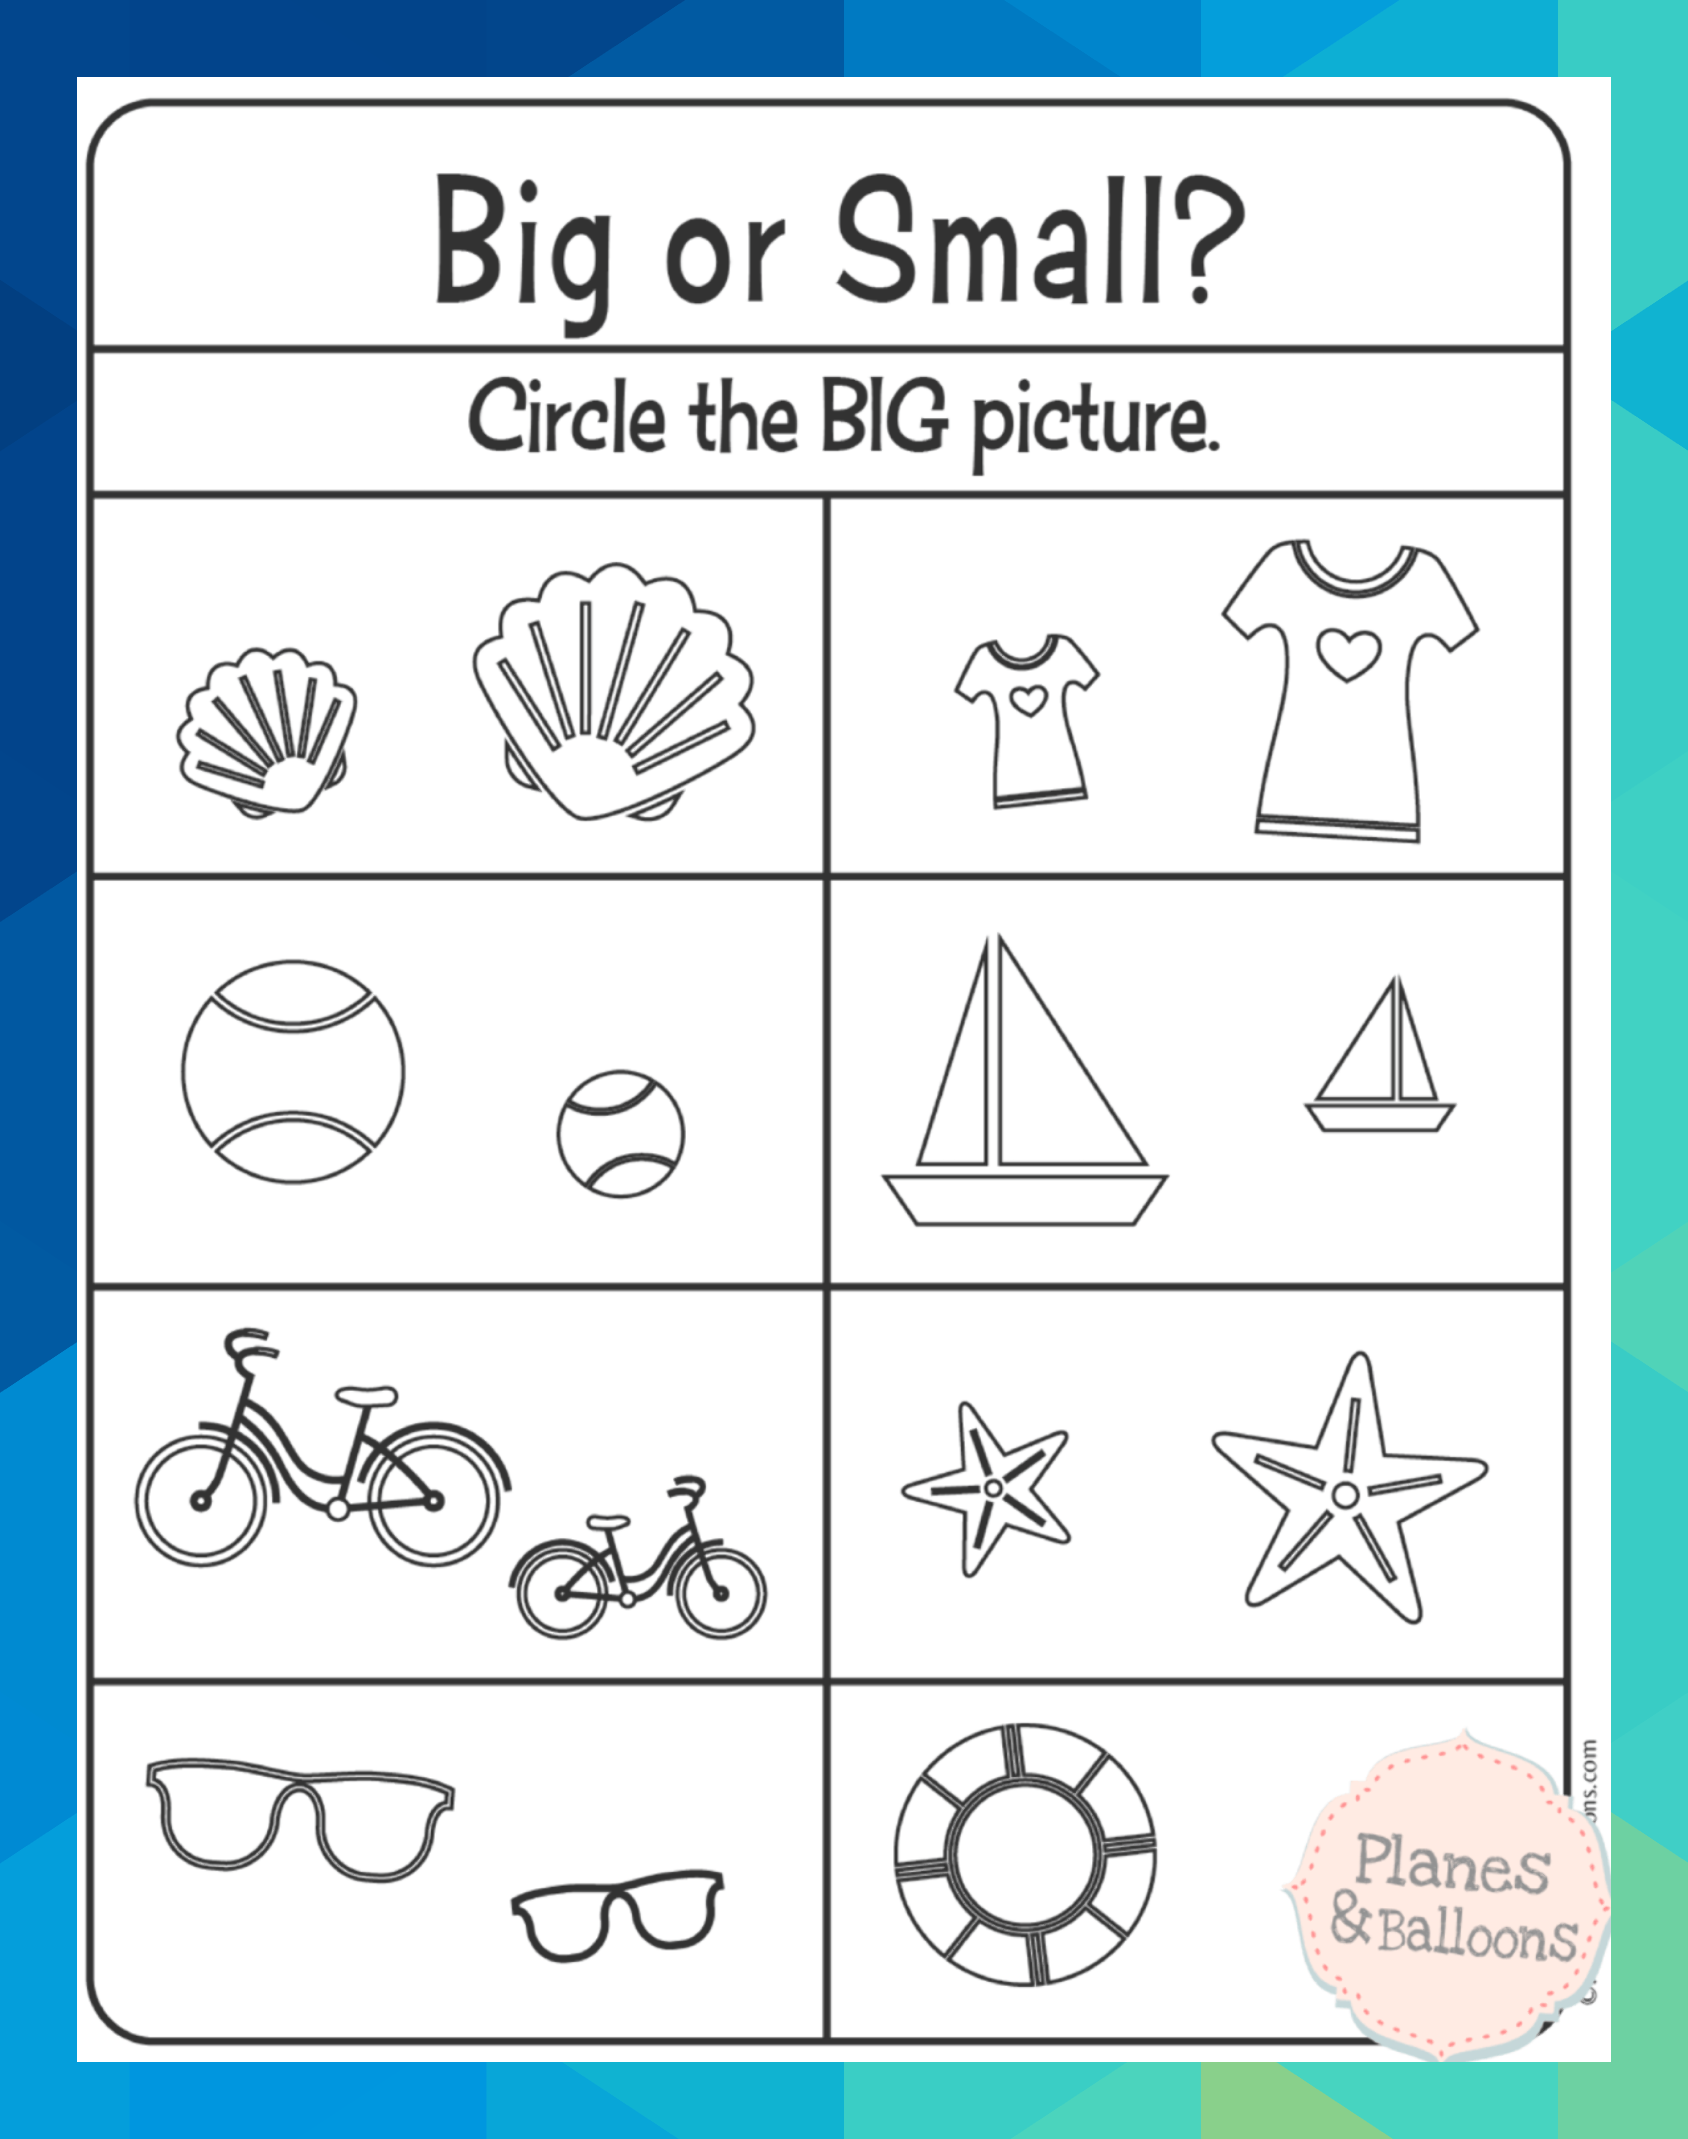 Easy Prek Free Printable Worksheets Perfect For 3 Year